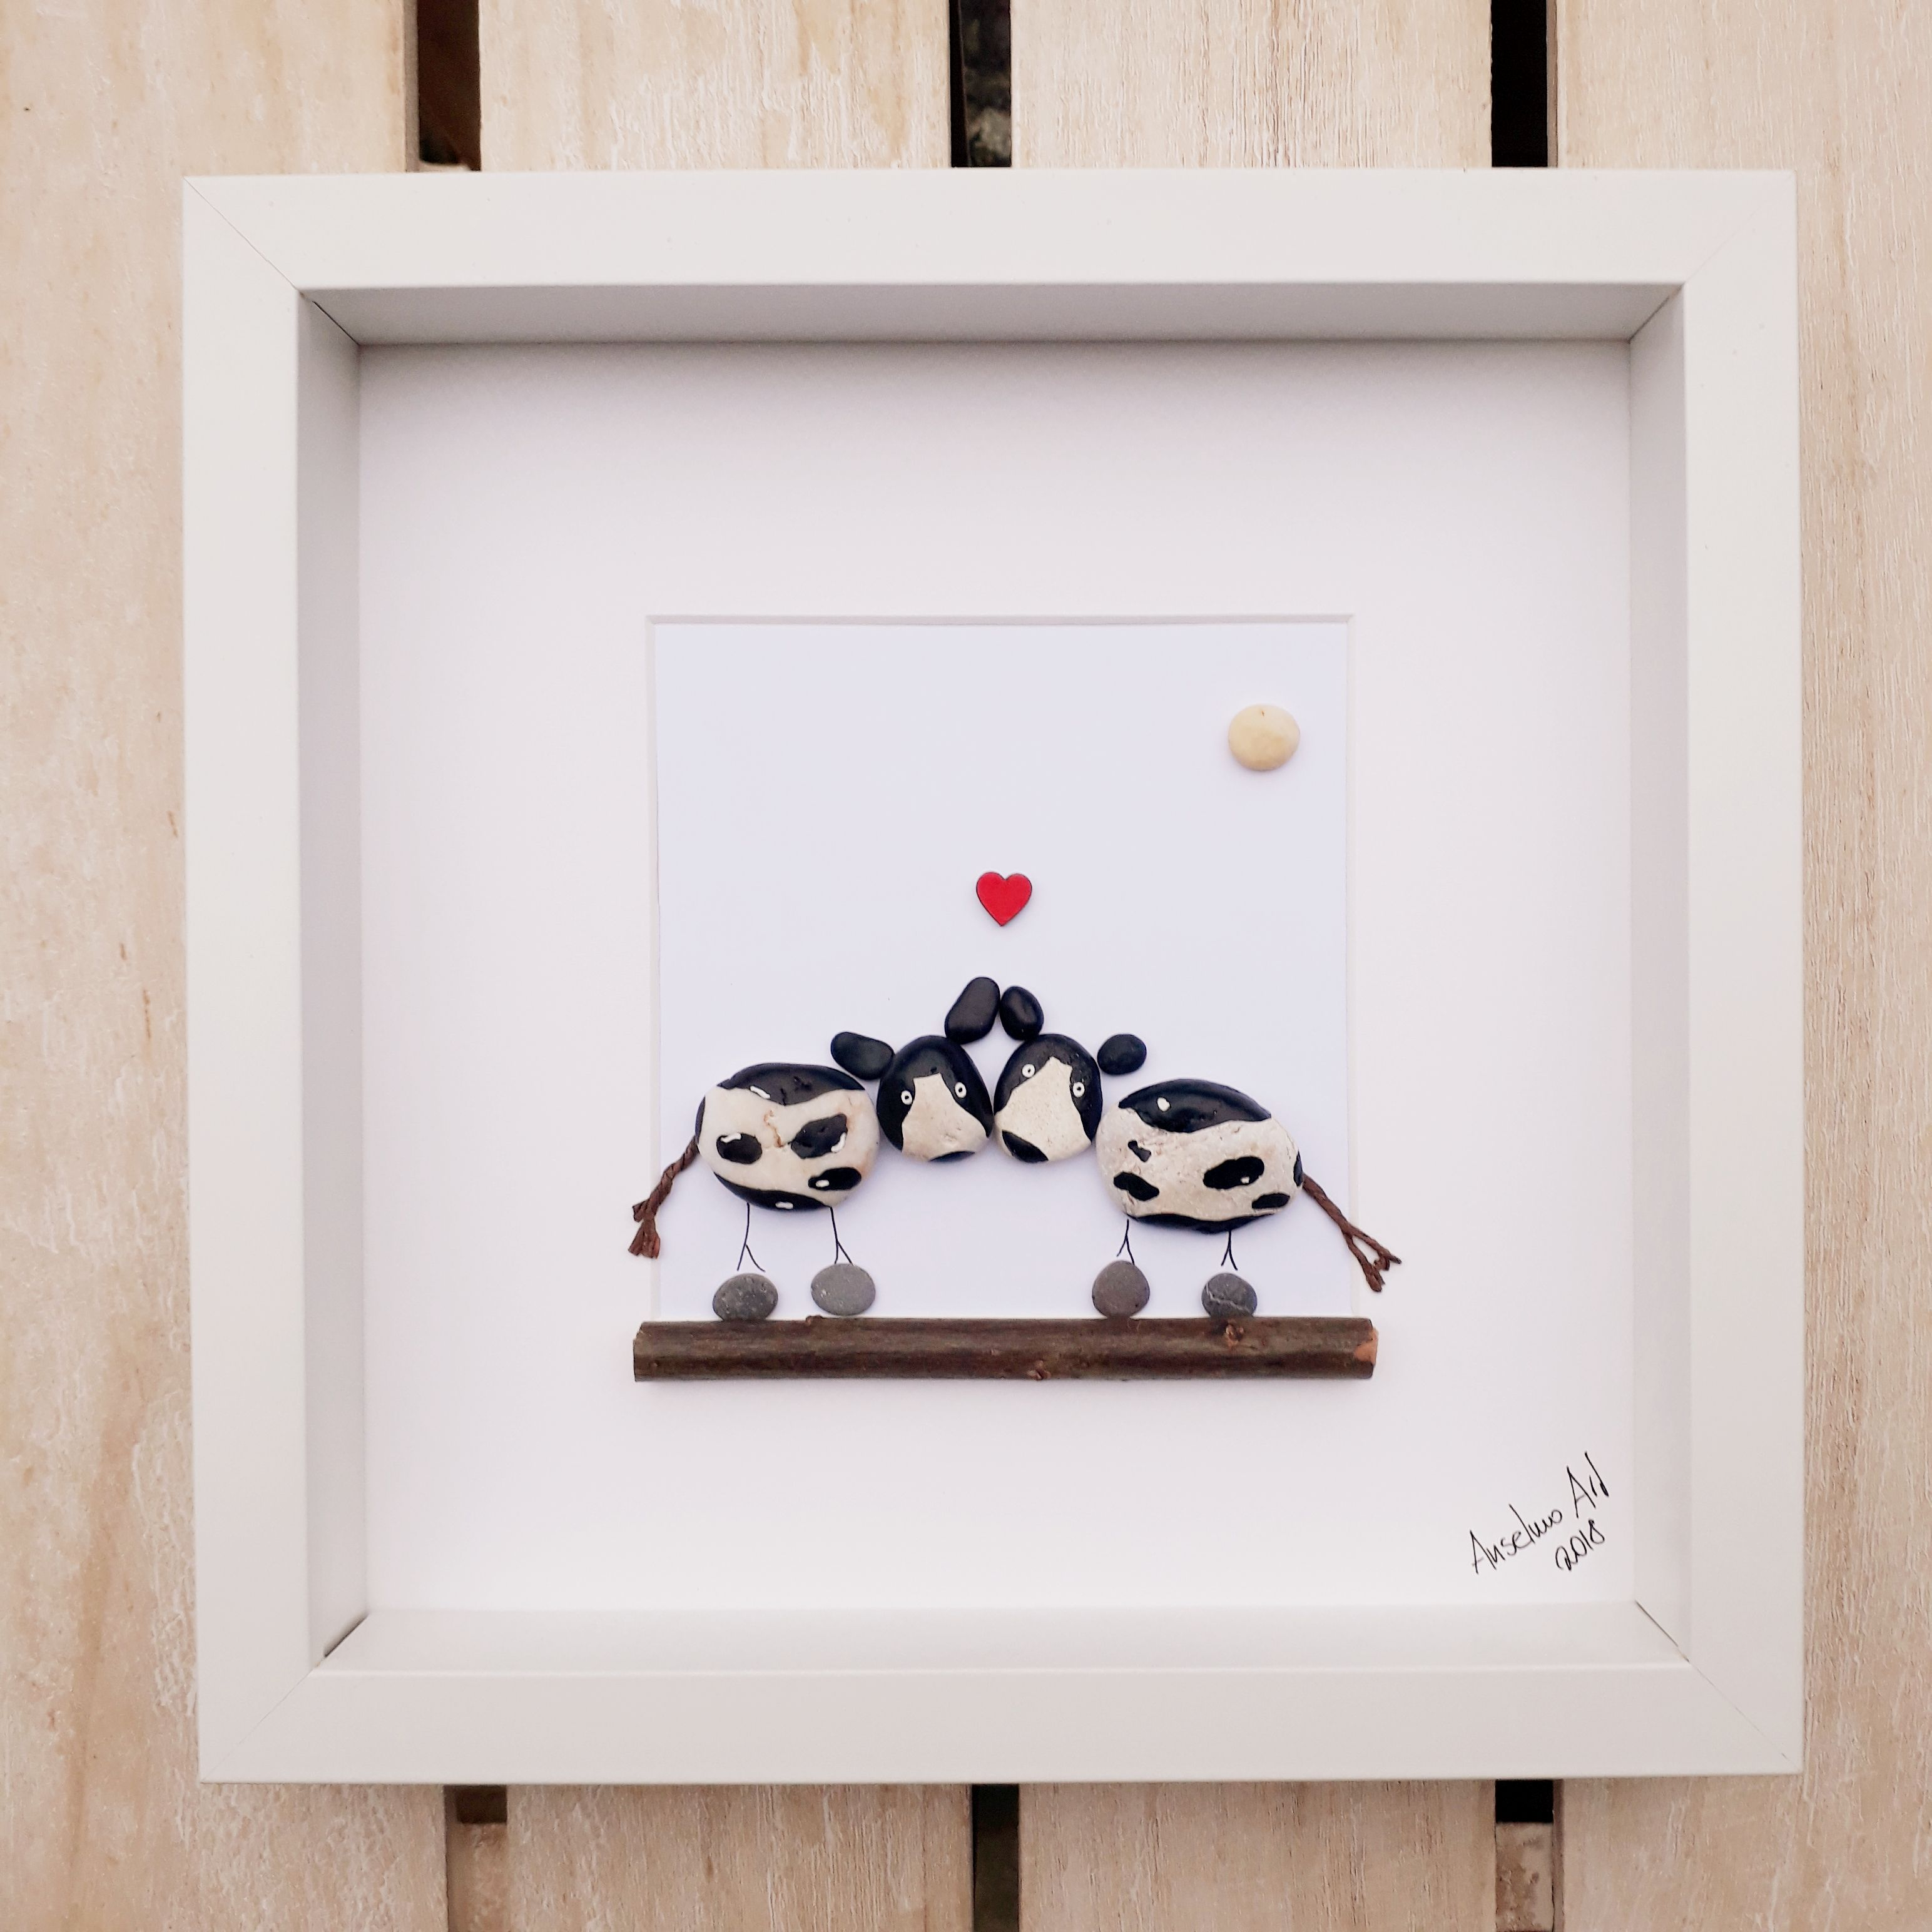 Cows pebble picture framed pebble art valentines day